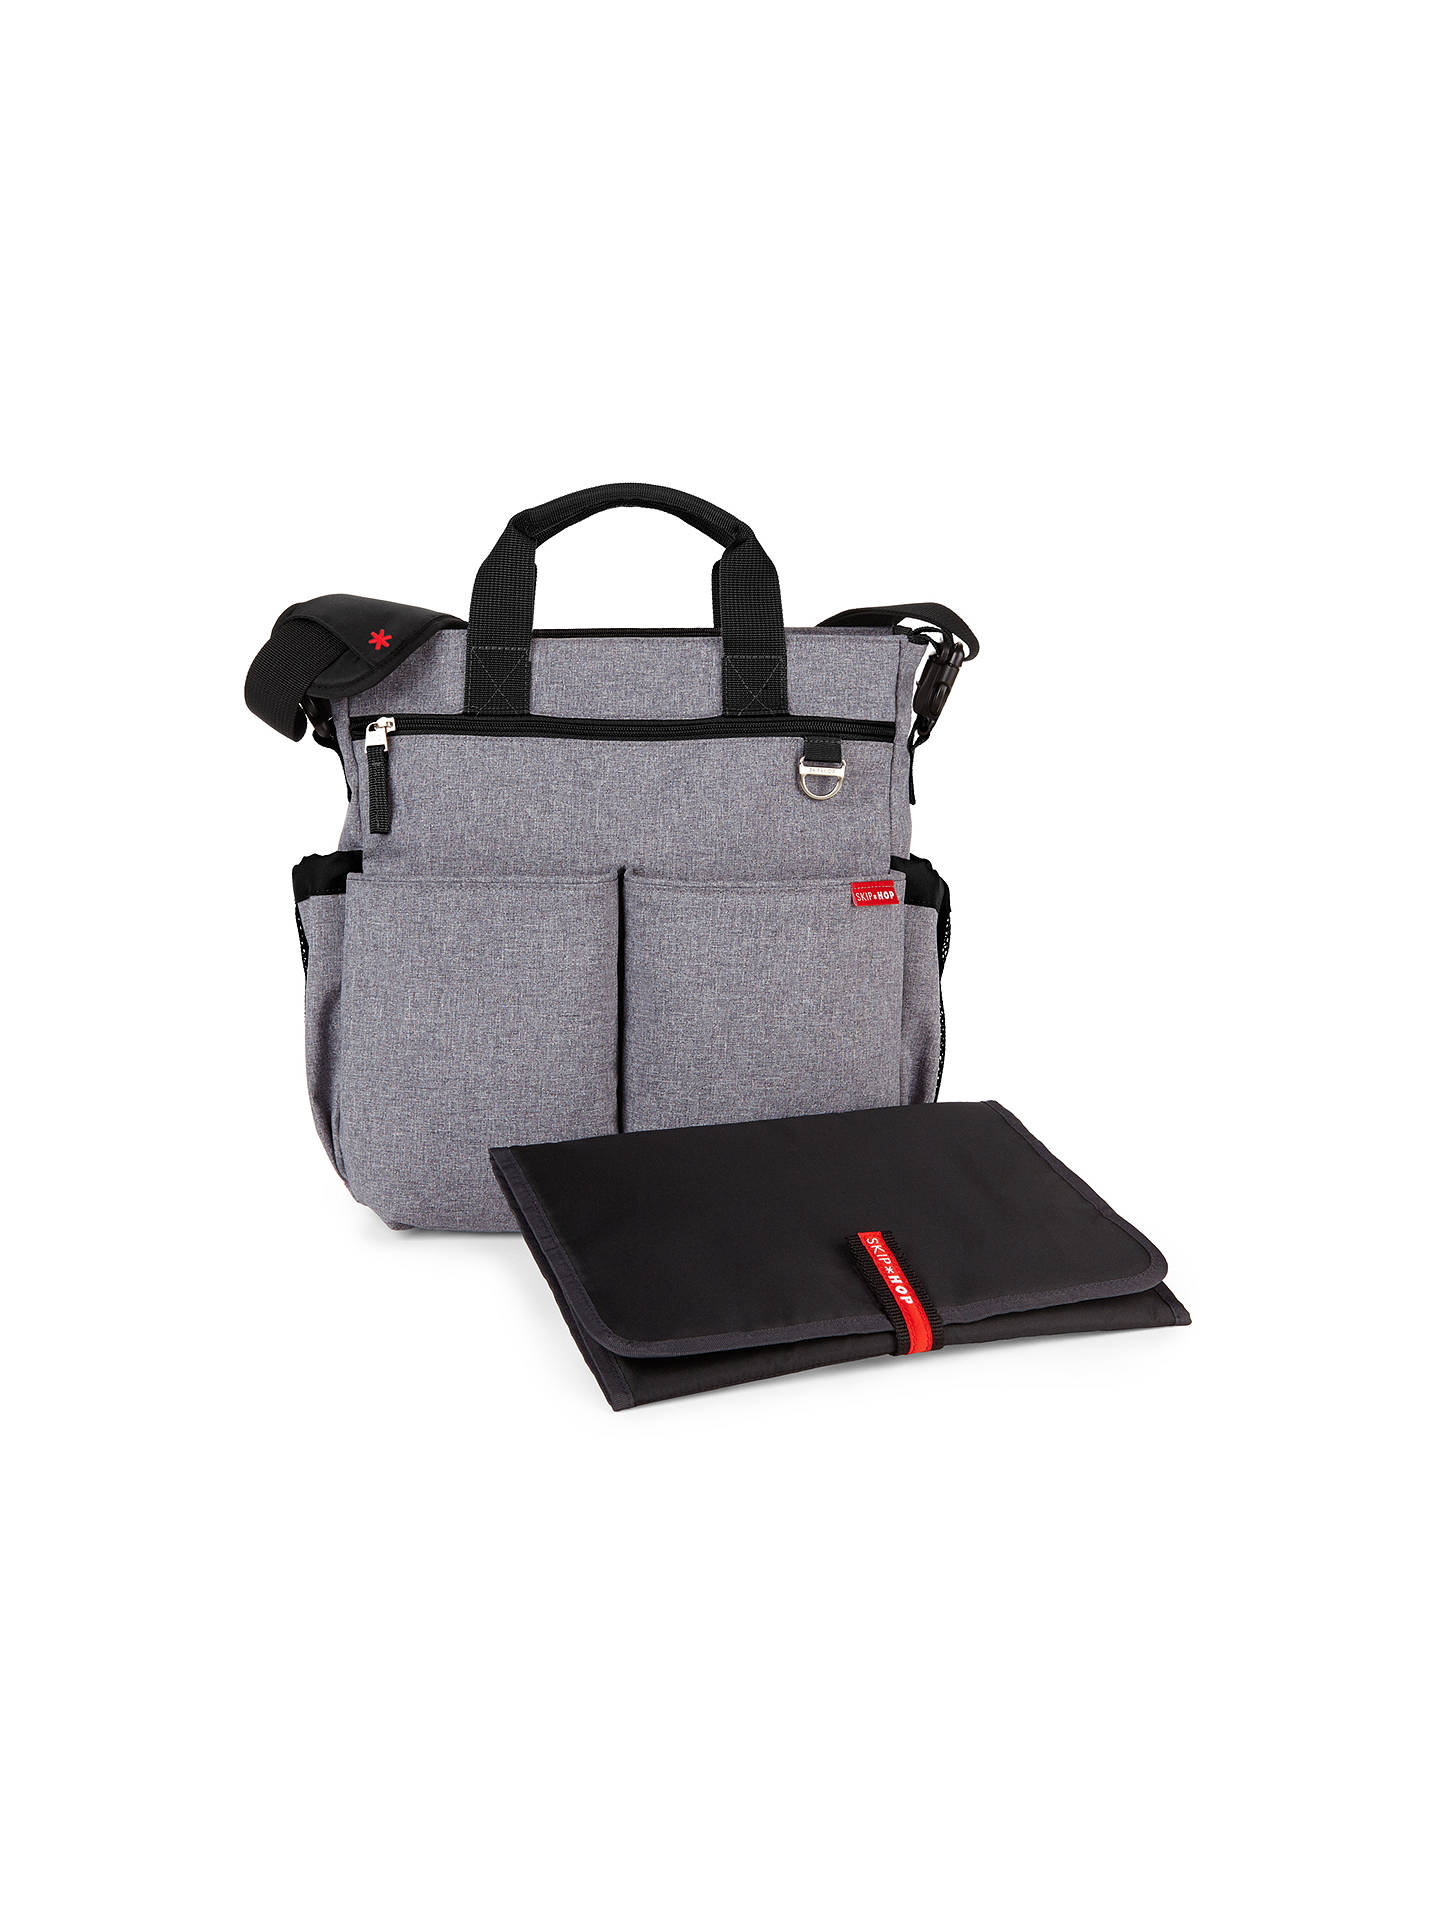 72d7b6819c734 Buy Skip Hop Duo Signature Changing Bag, Heather Grey Online at  johnlewis.com ...